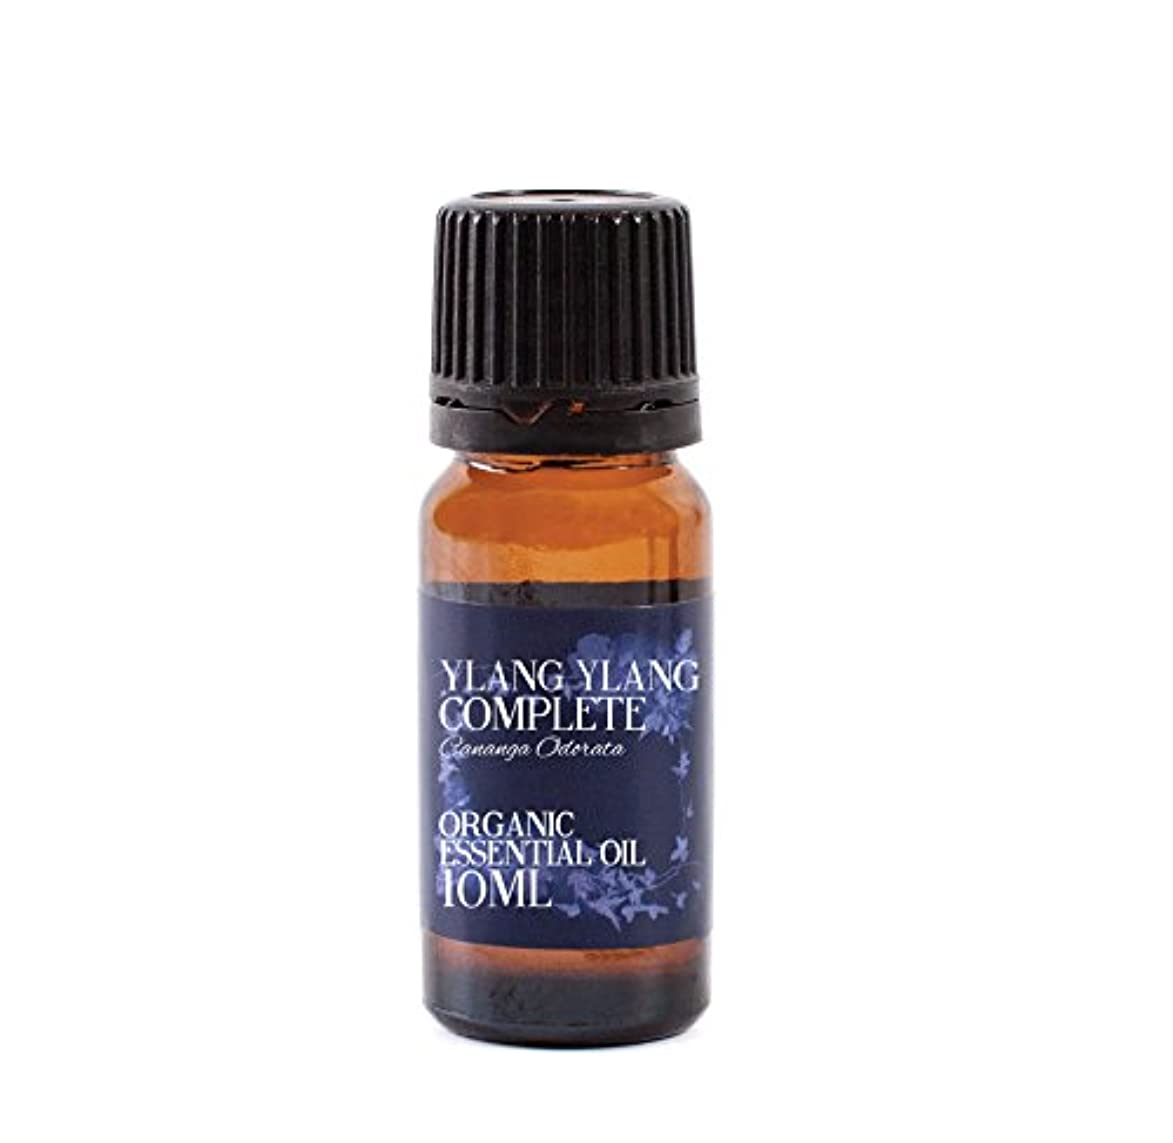 フェミニン醸造所例Mystic Moments | Ylang Ylang Complete Organic Essential Oil - 10ml - 100% Pure